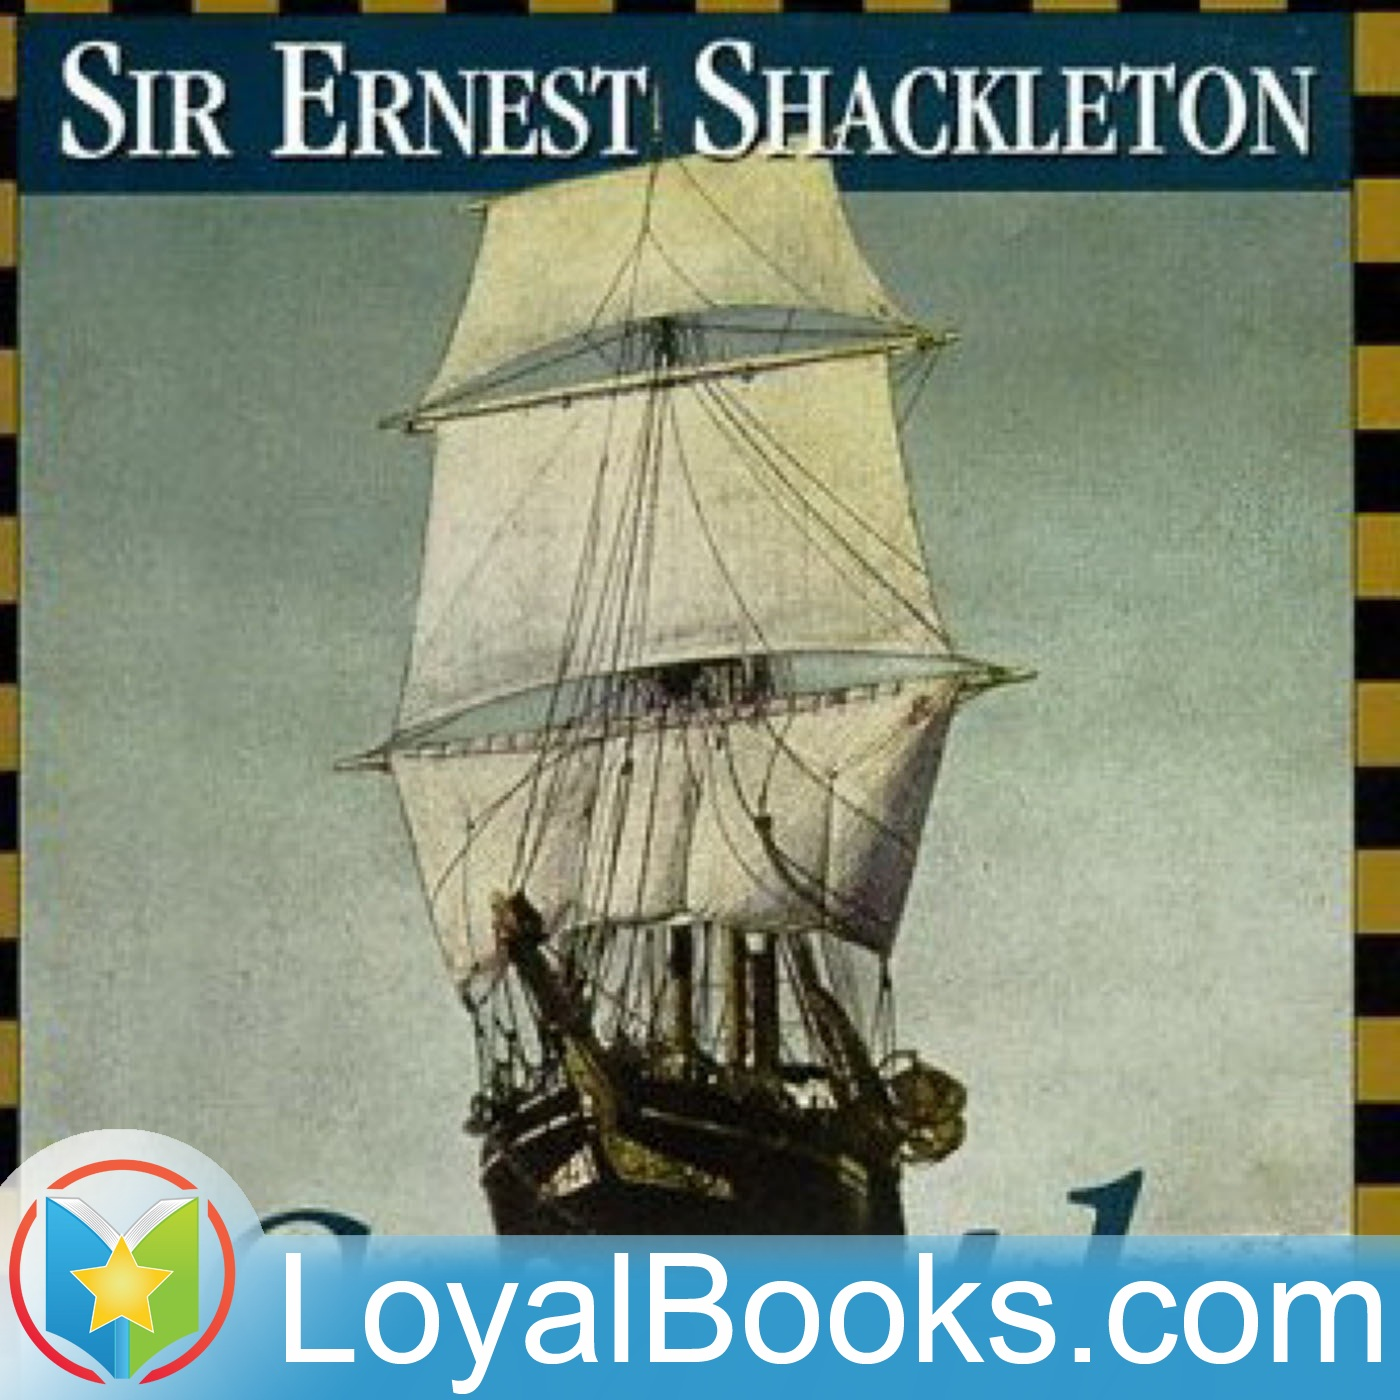 <![CDATA[South! The Story of Shackleton's Last Expedition 1914-1917 by Ernest Shackleton]]>